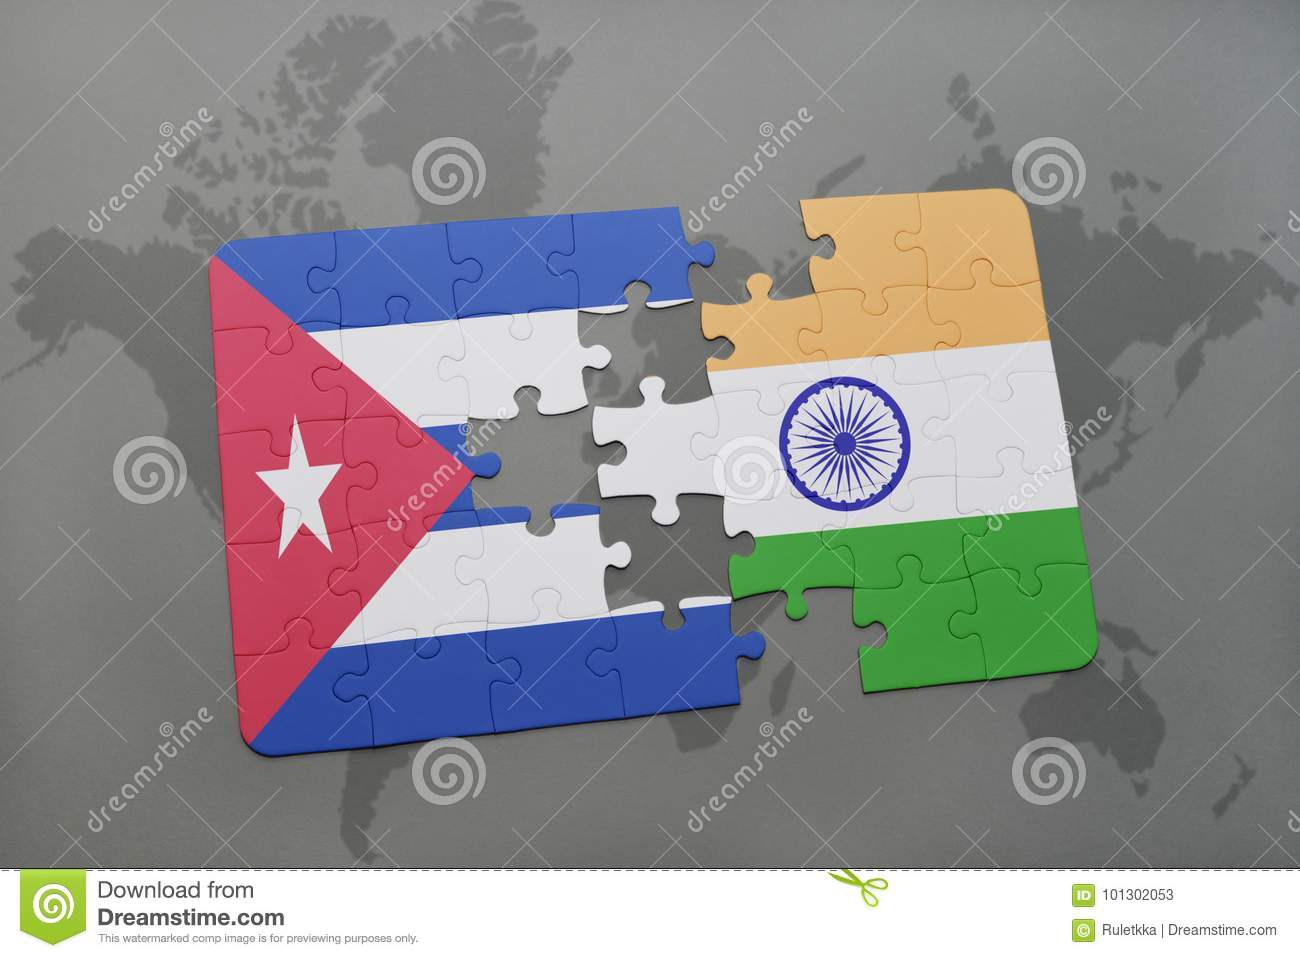 Puzzle with the national flag of cuba and india on a world map download puzzle with the national flag of cuba and india on a world map background gumiabroncs Images